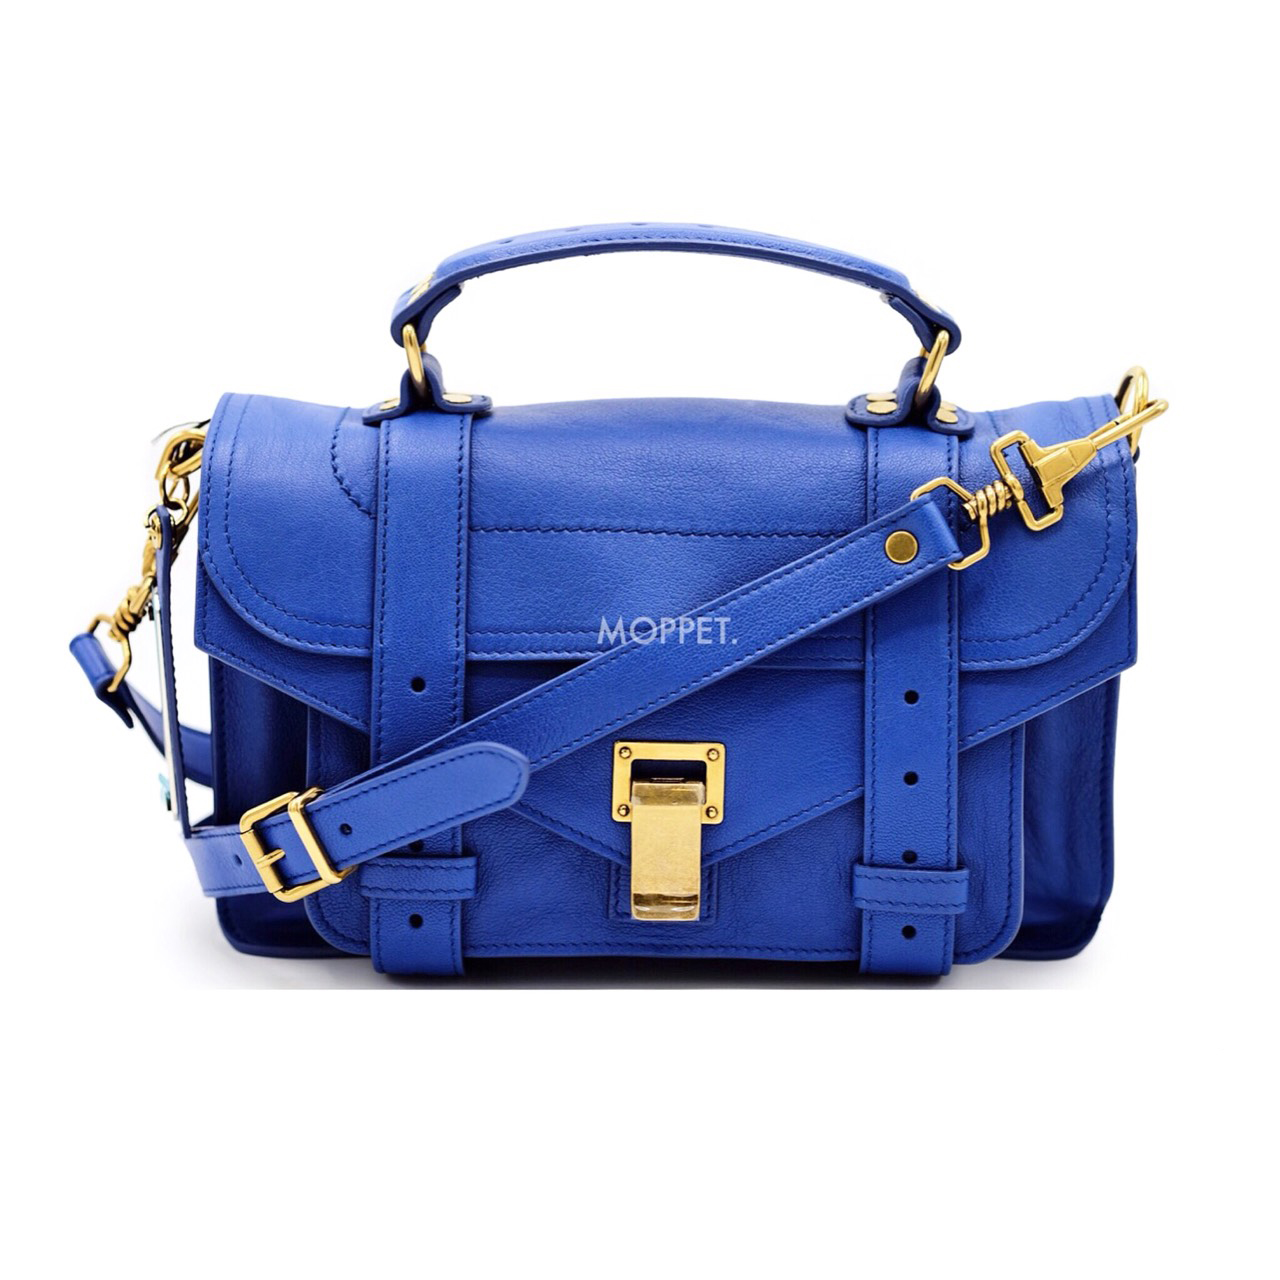 Like New Proenza Schouler PS1 Tiny in Royal Blue Leather GHW